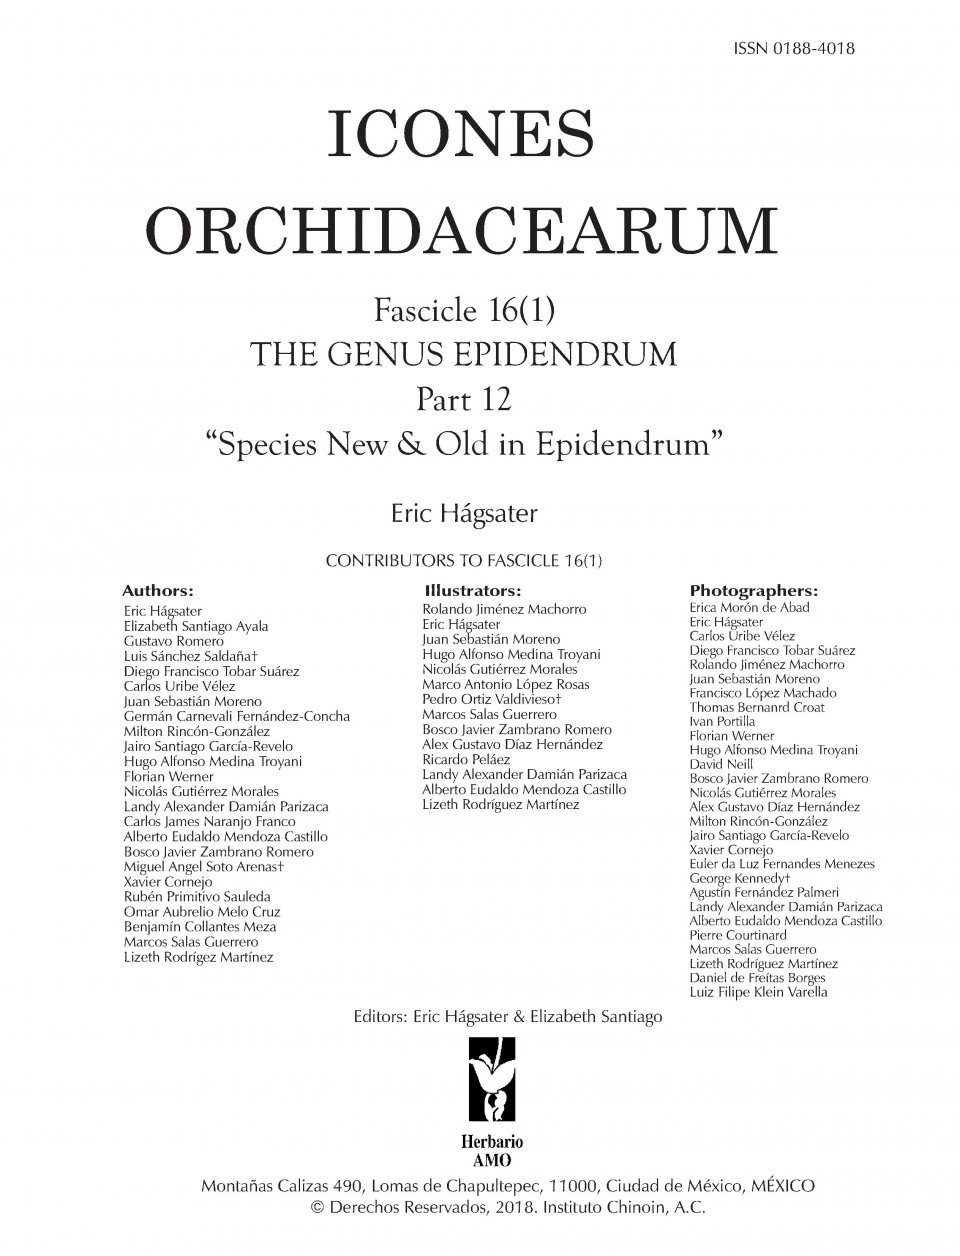 Icones Orchidacearum, Fascicle 16(1)